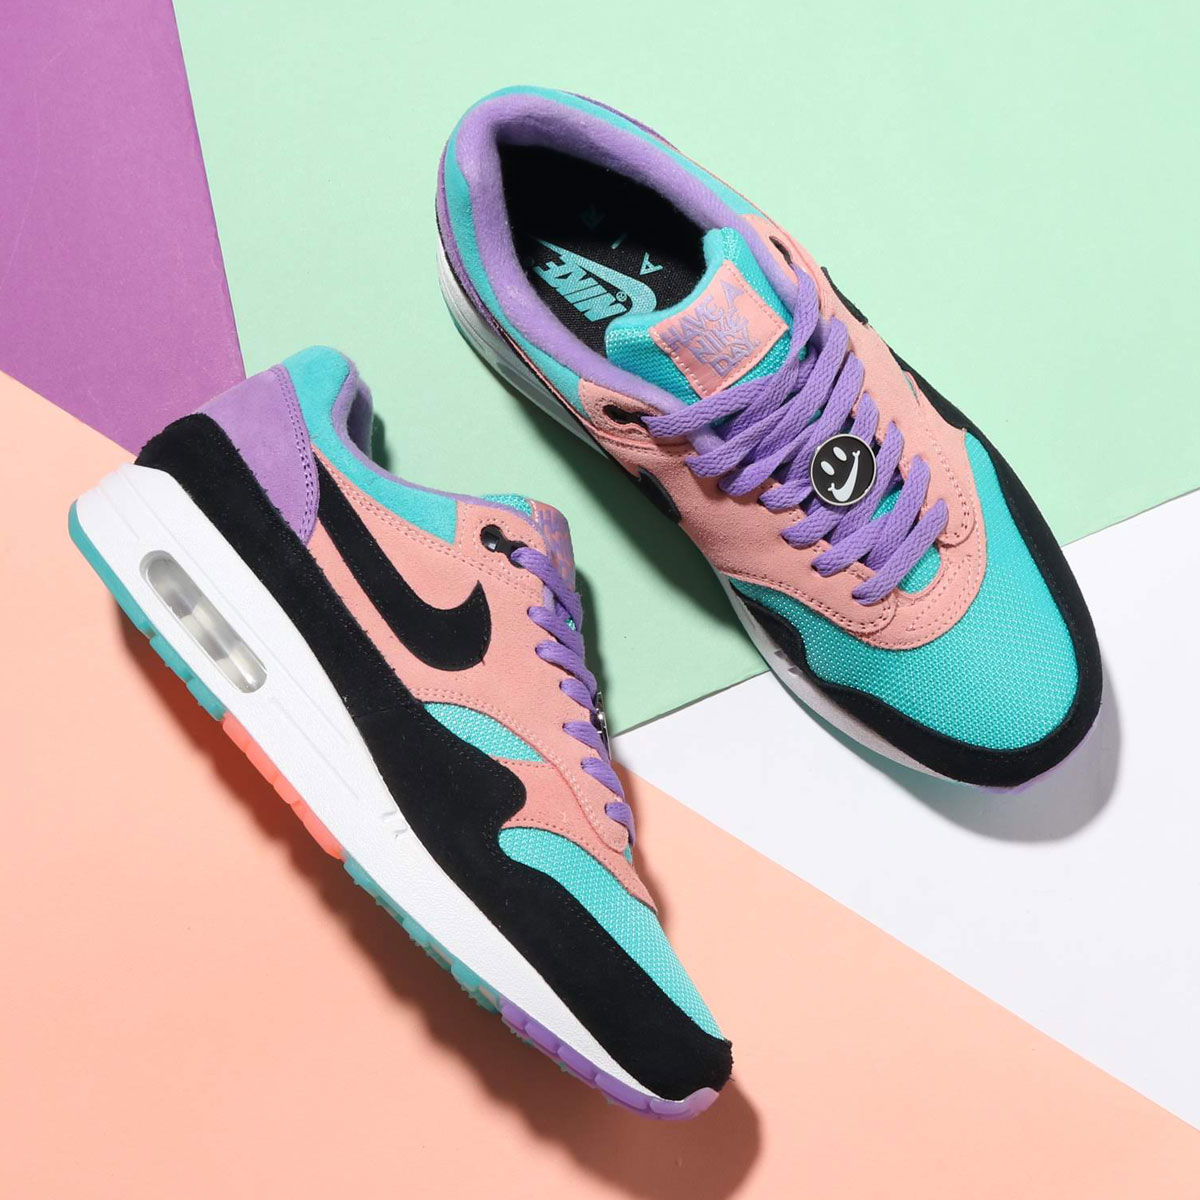 NIKE AIR MAX 1 ND (ナイキ エア マックス 1 ND)SPACE PURPLE/BLACK-BLEACHED CORAL【メンズ レディース スニーカー】19SP-I